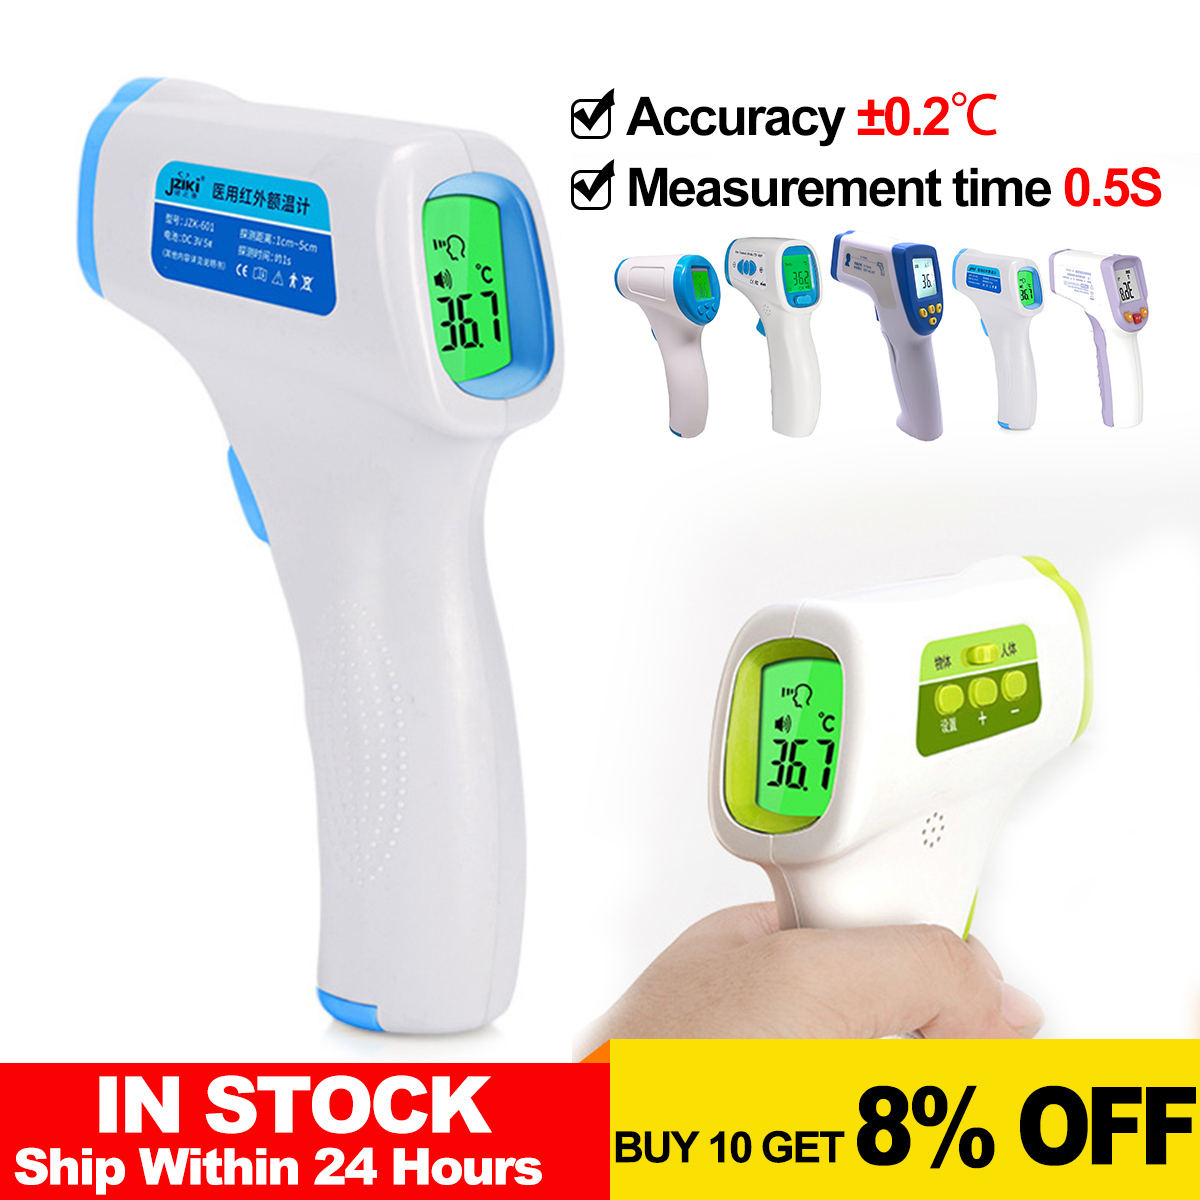 Medical Infrared Thermometer Forehead Baby Portable Non-contact Child Handheld Body/Object Temperature Measure Health Management